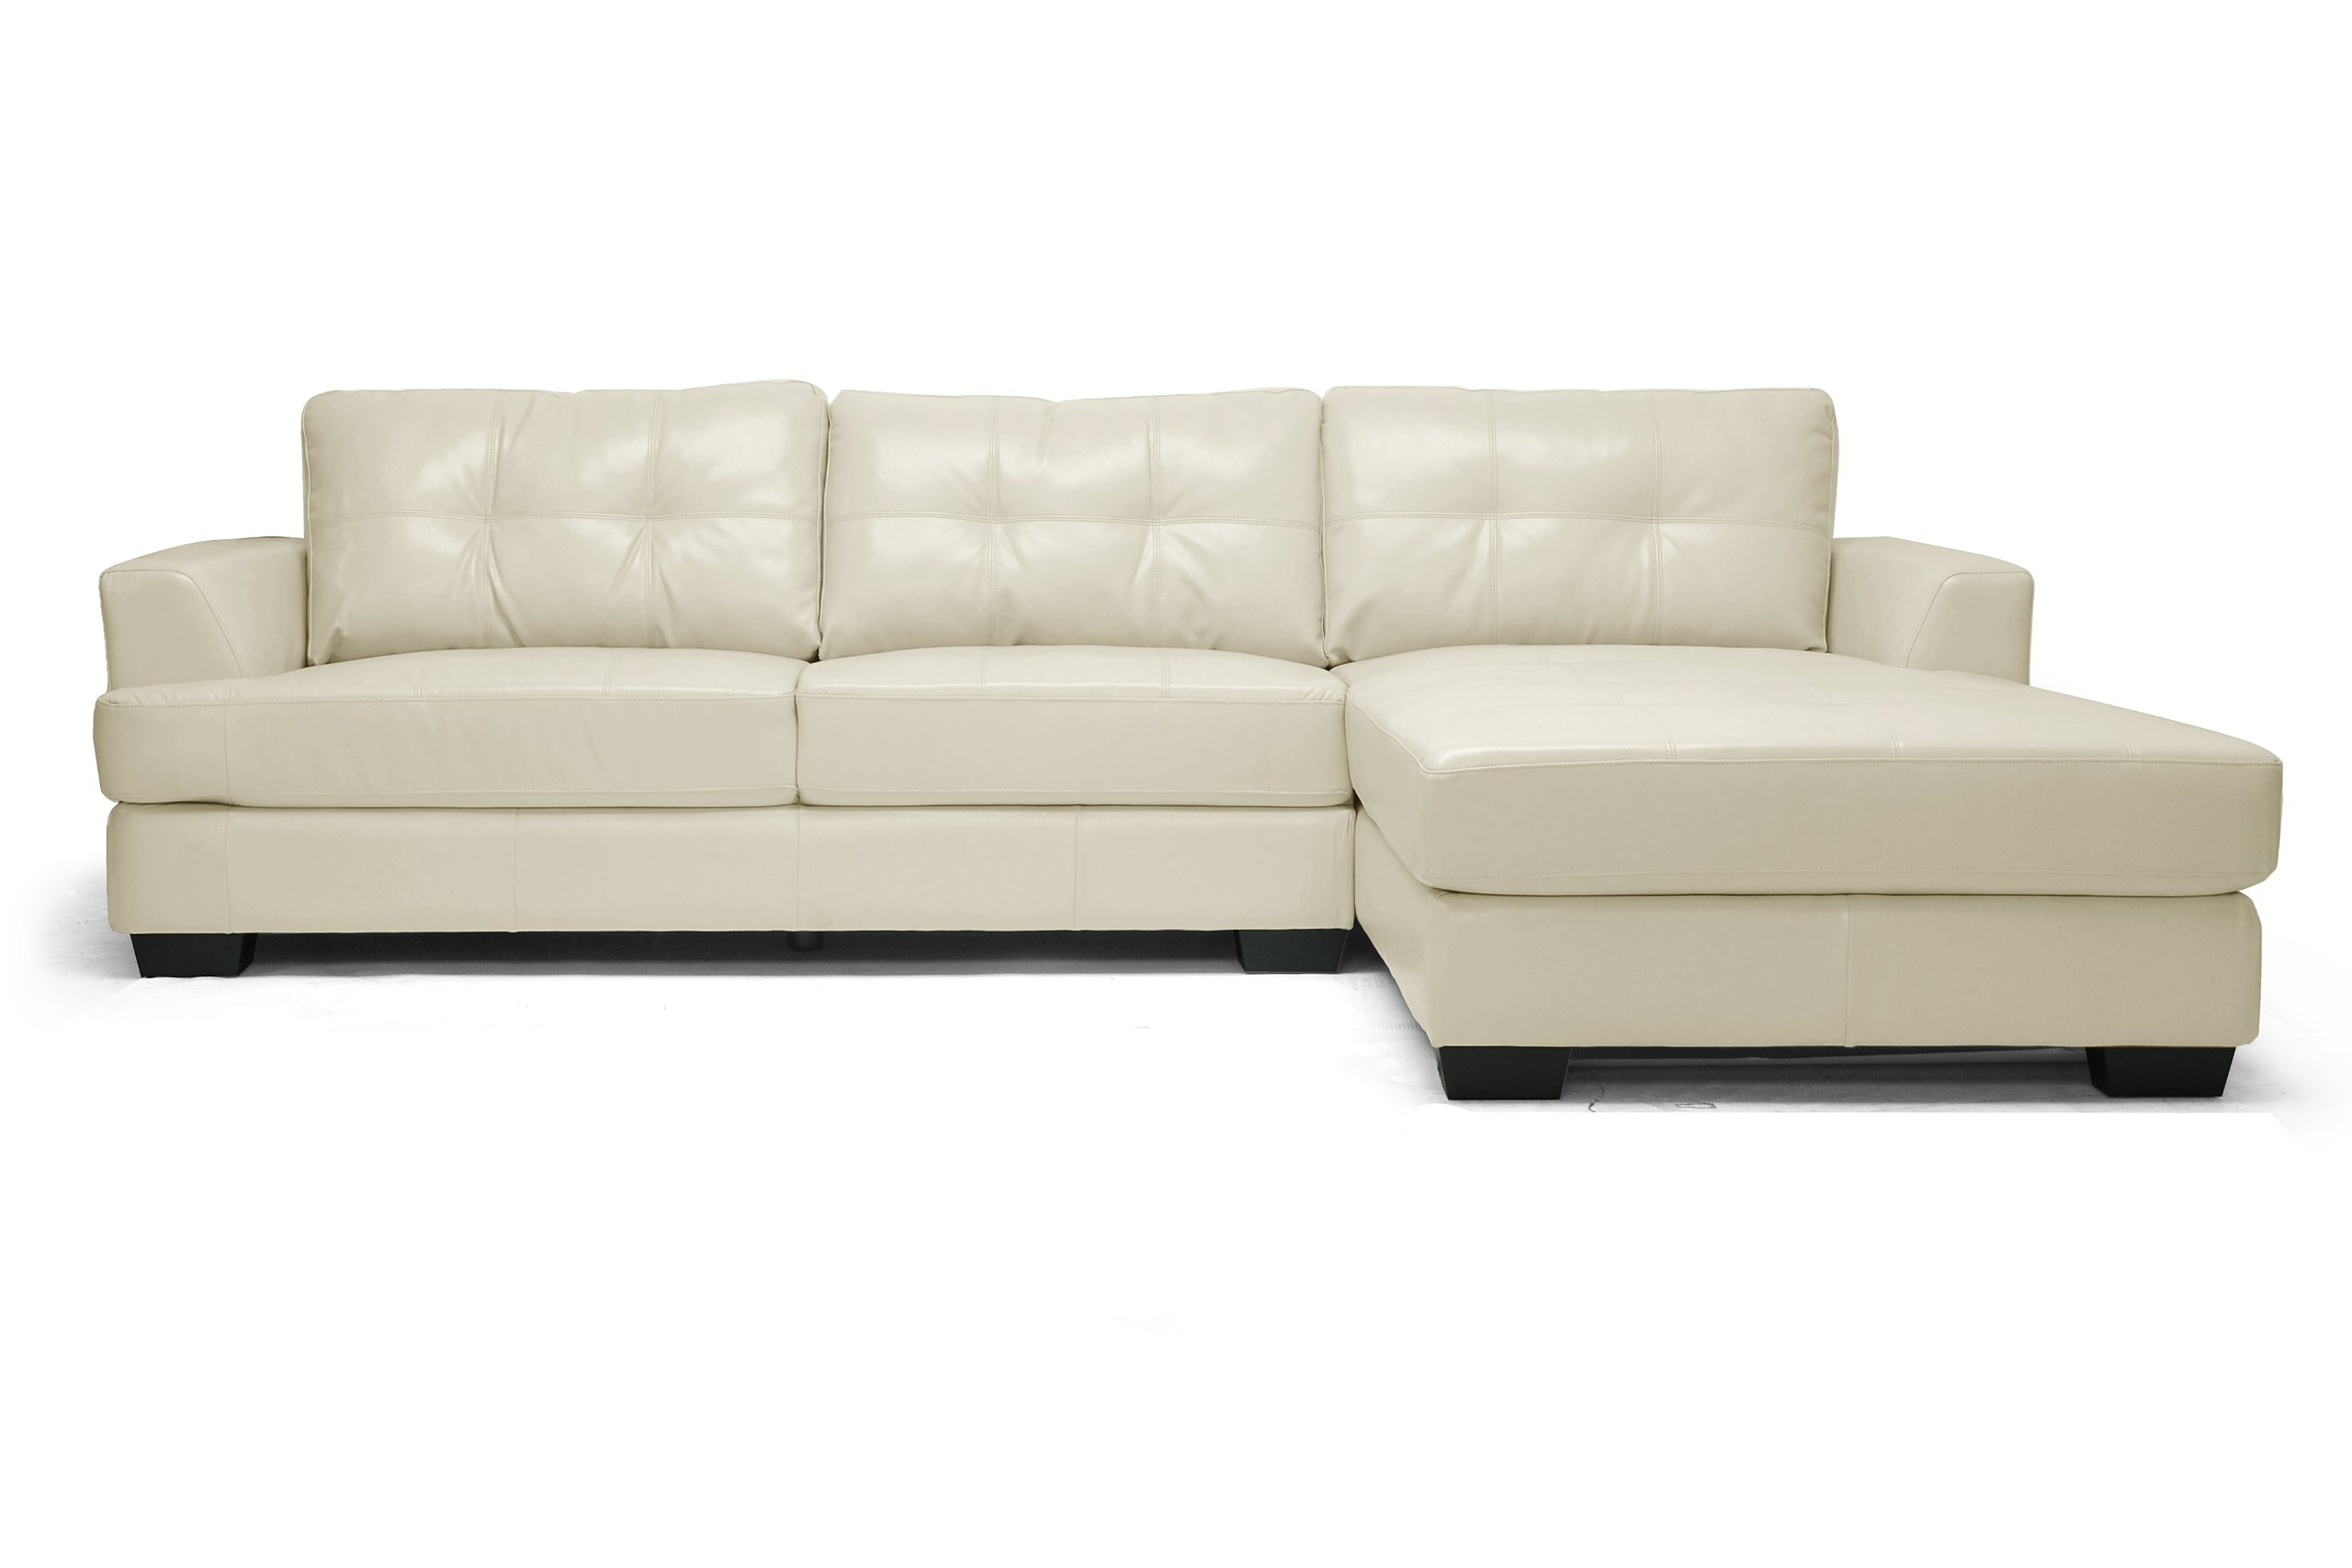 Baxton Studio Dobson Leather Modern Sectional Sofa Cream